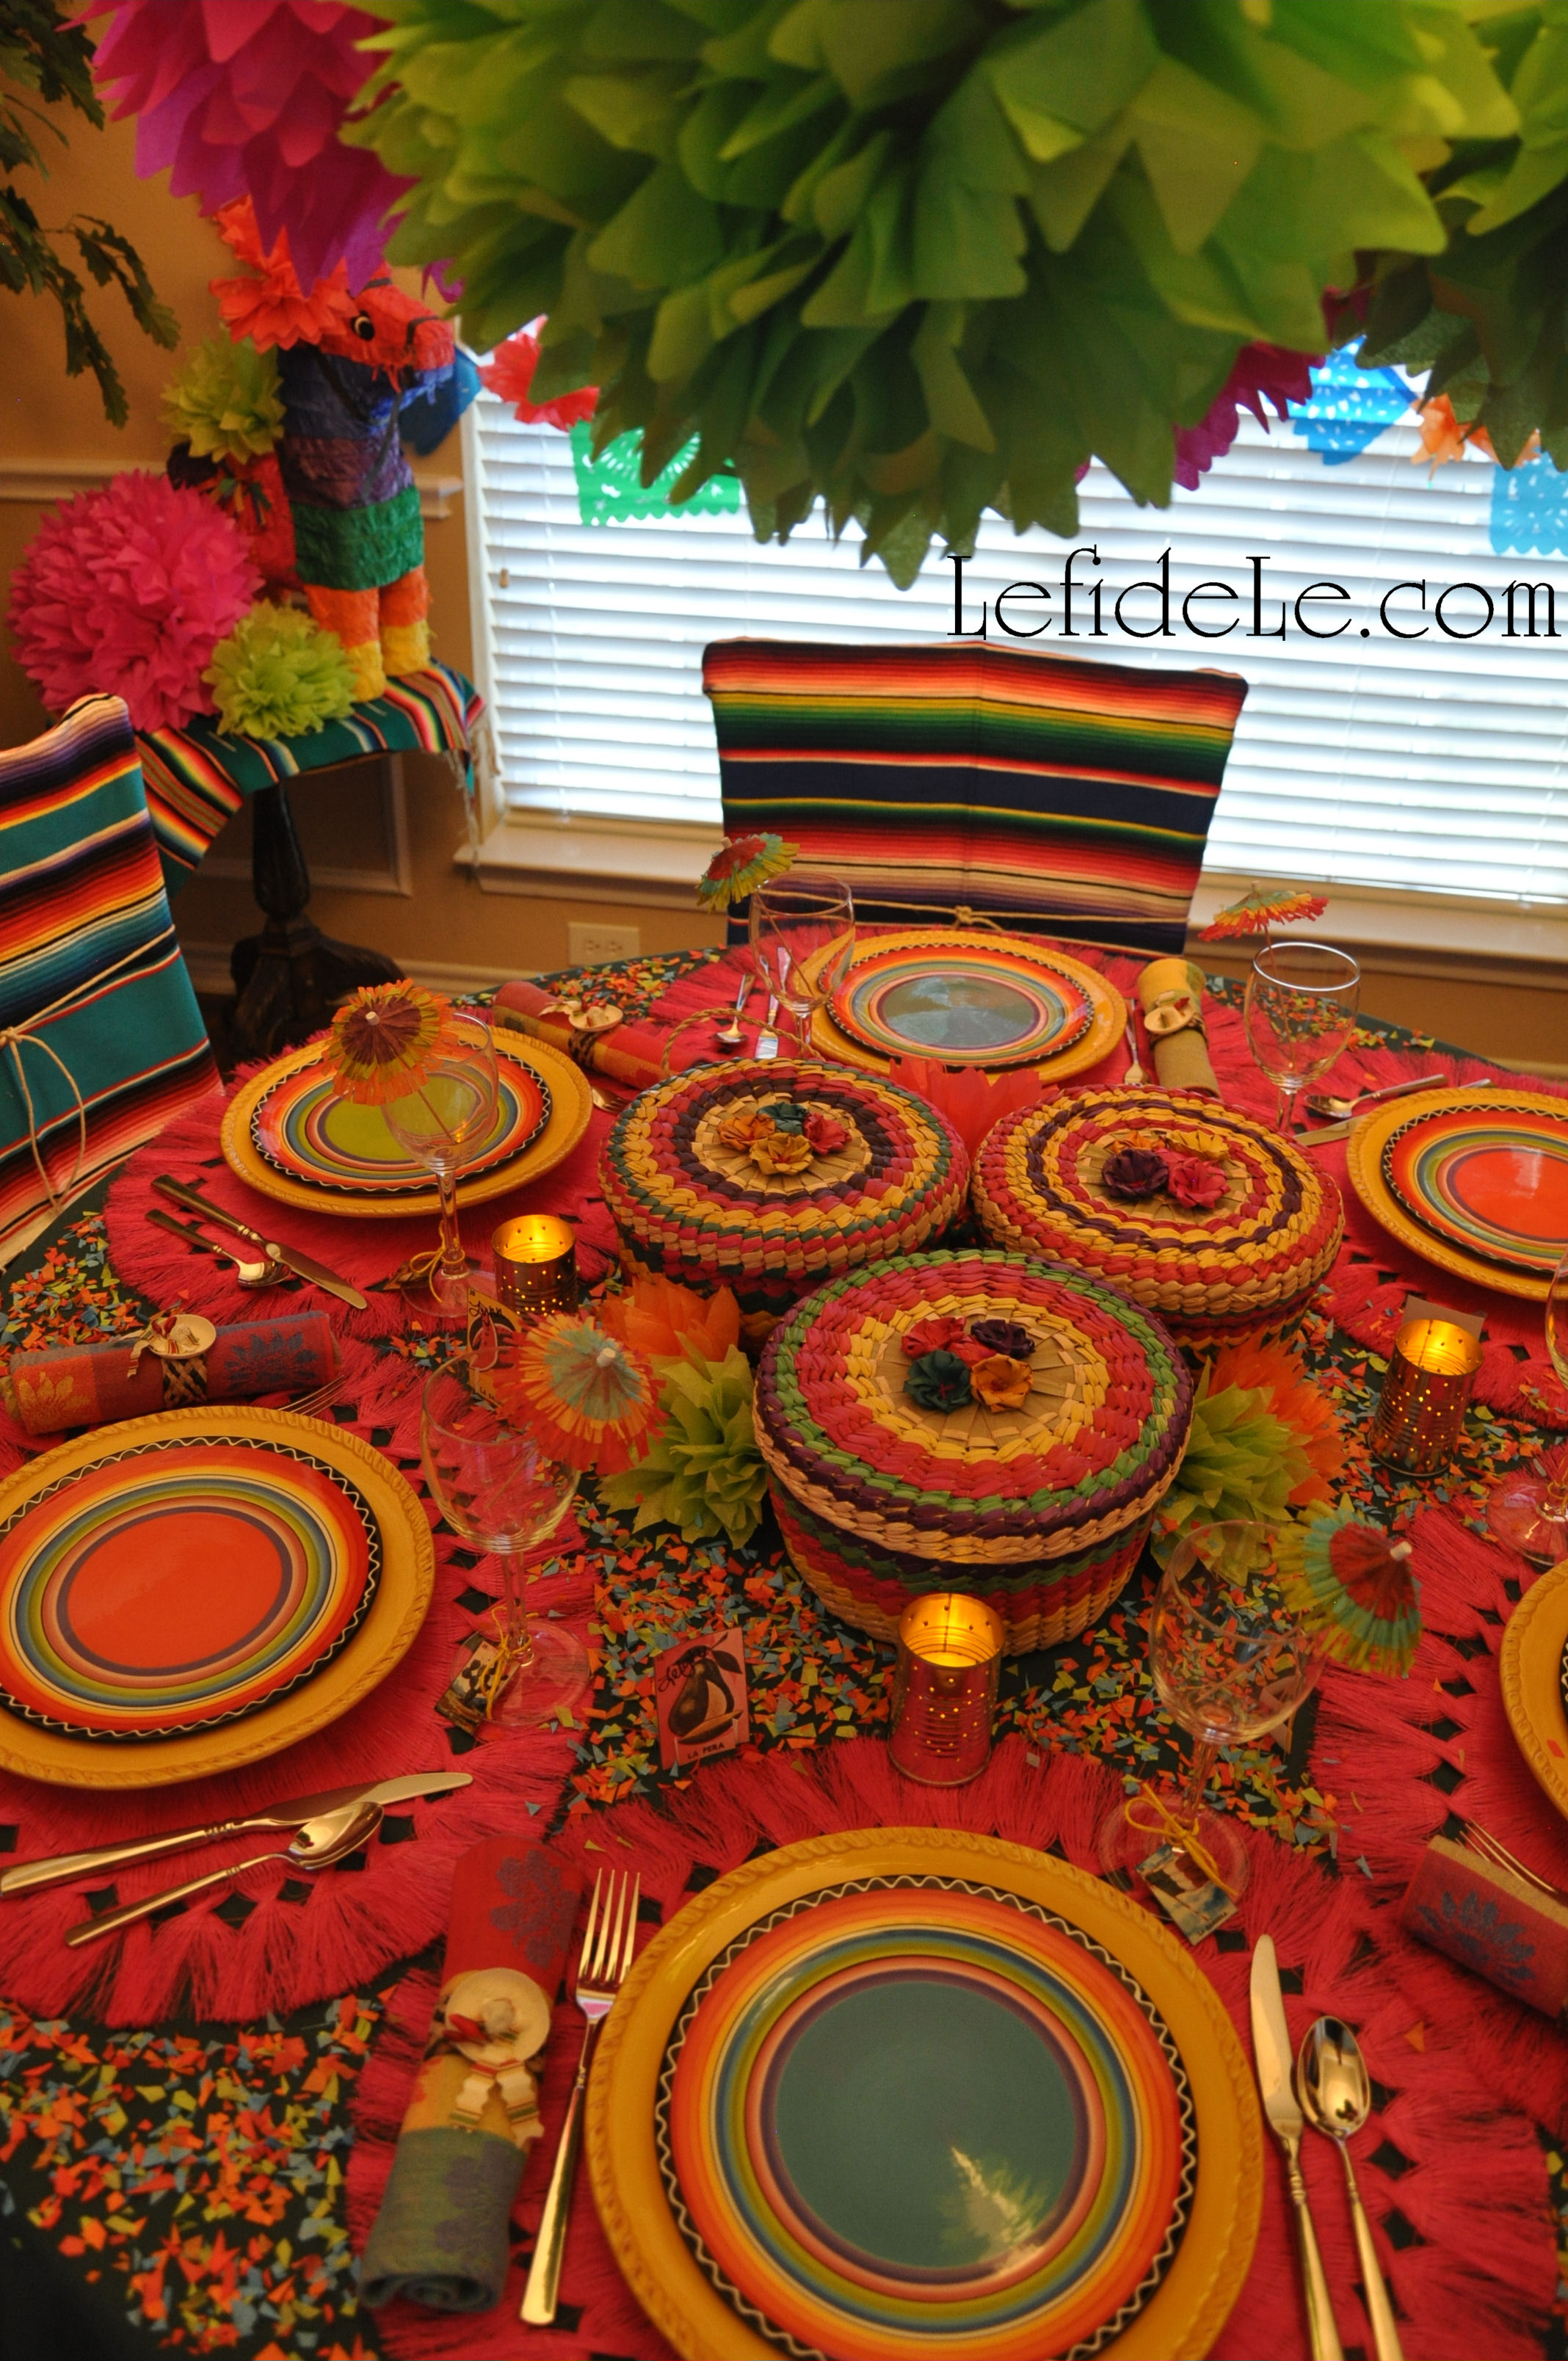 decor fiesta birthday to cute decorations adult party this mexican of family med ideas scheme